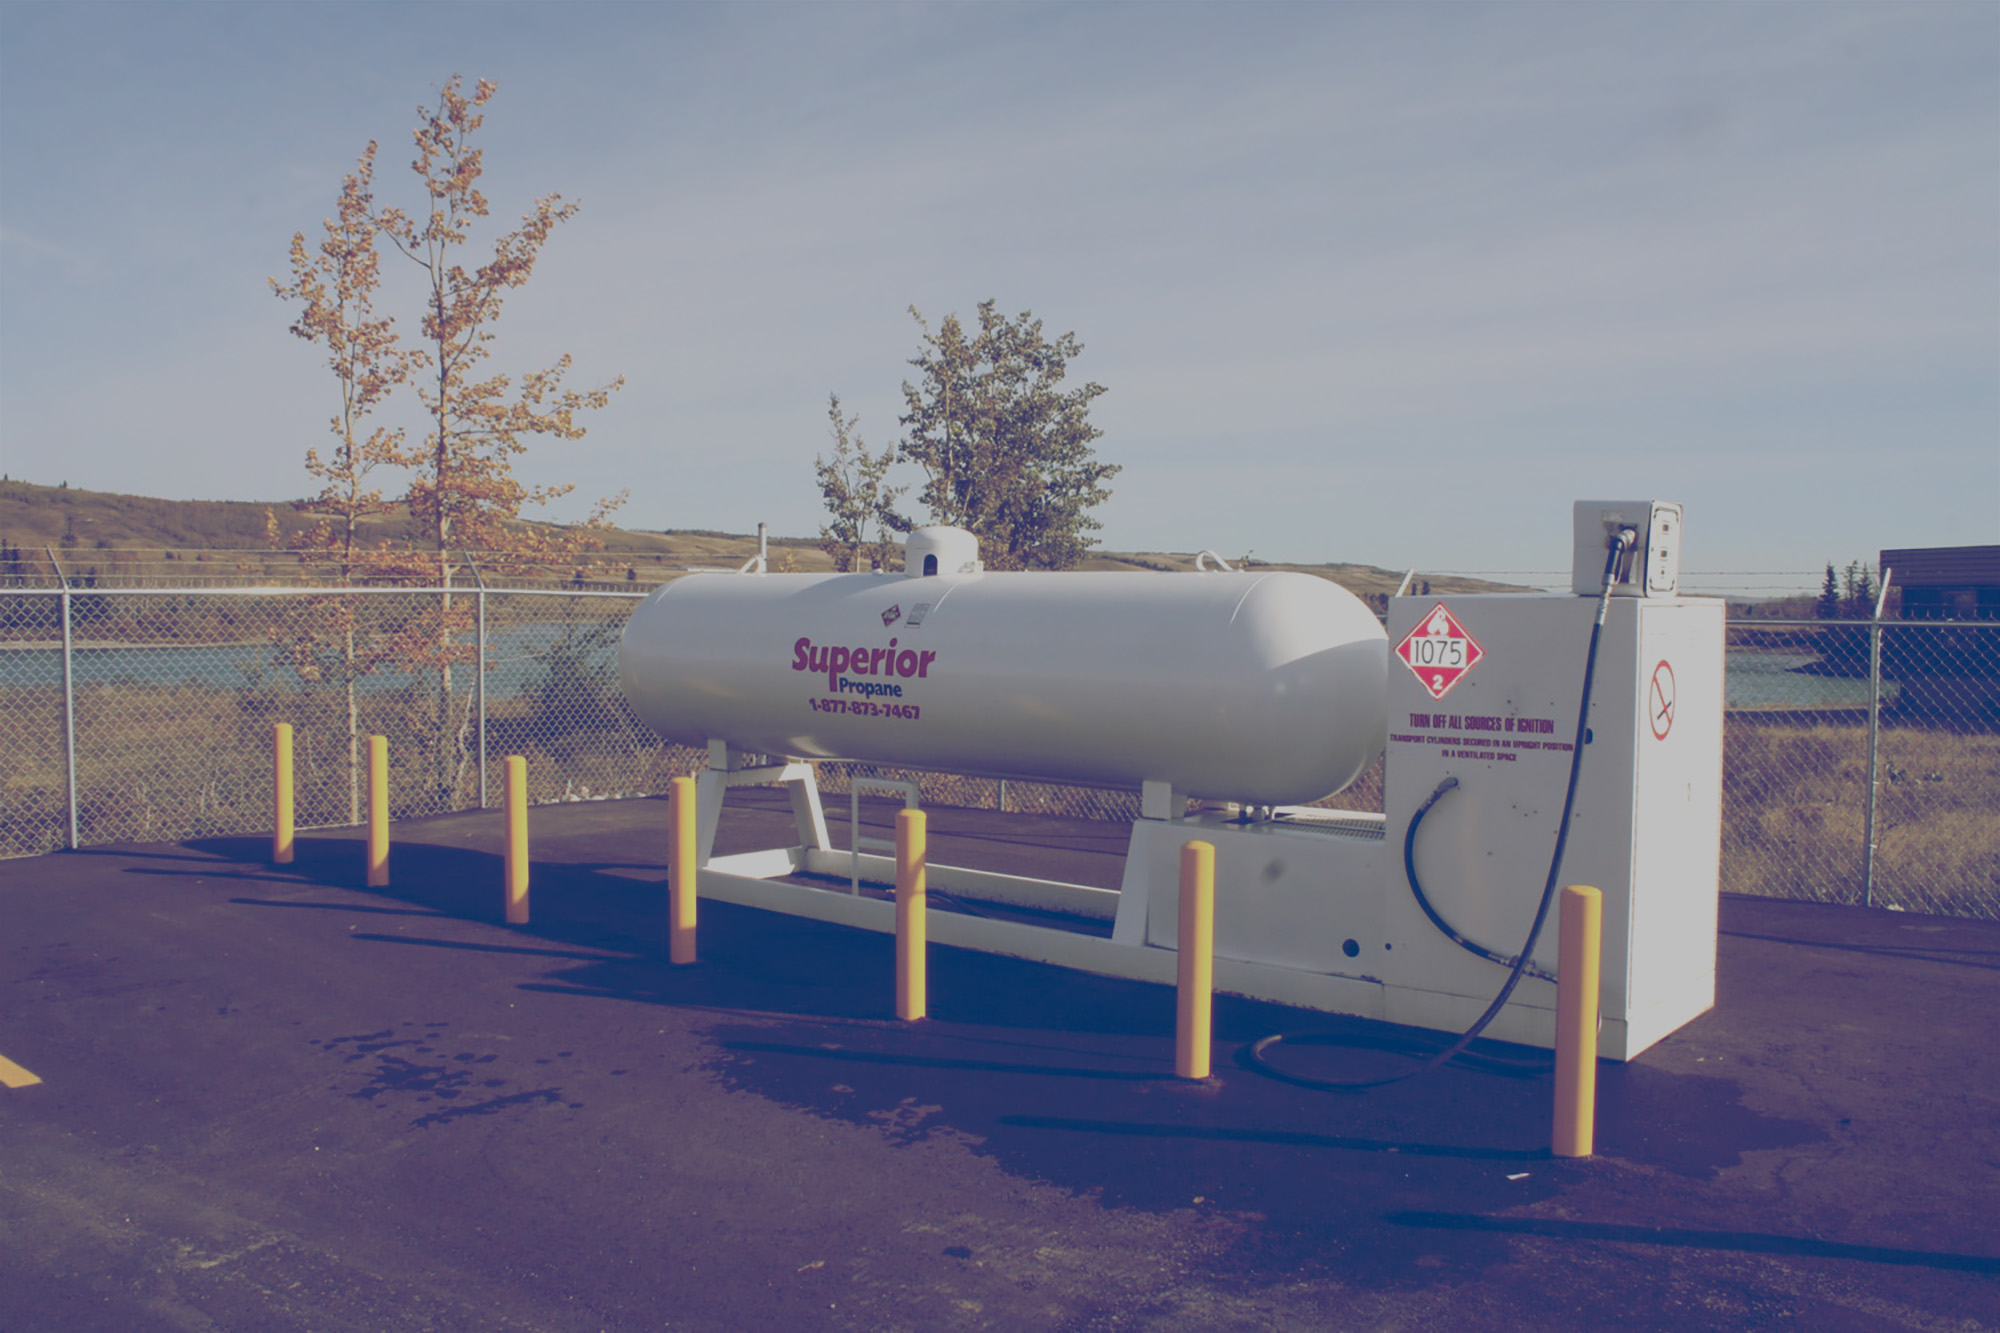 Superior propane autogas tank in a card lock station.